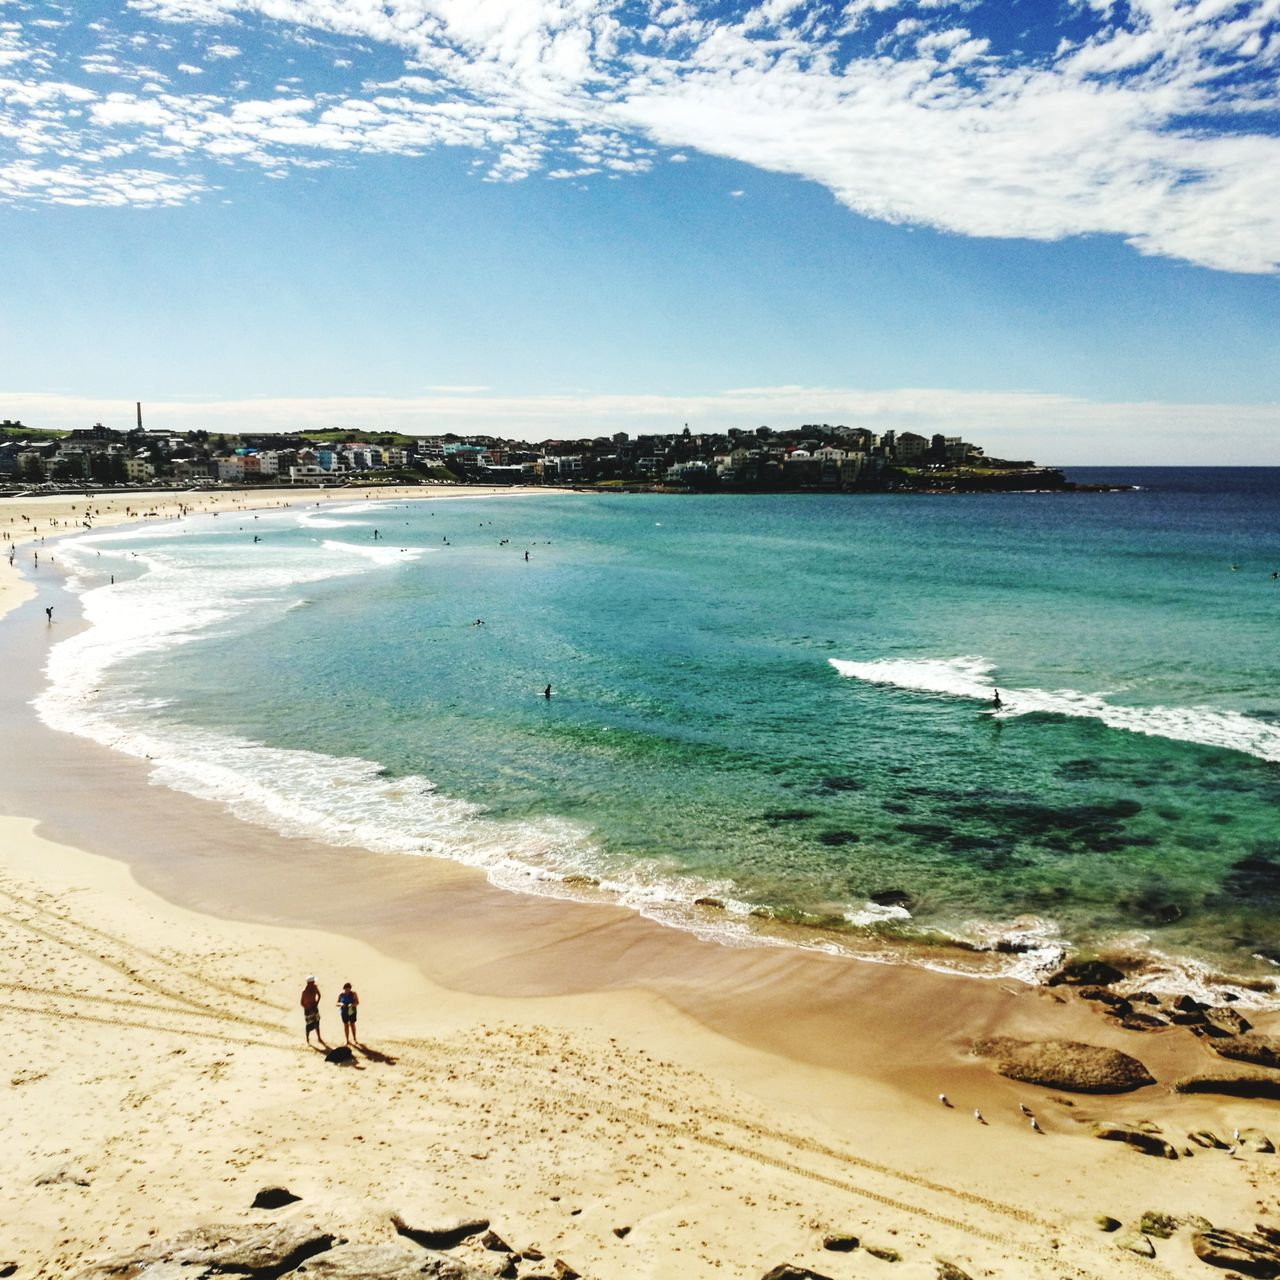 Bondi Beach, Sydney - Australia Beach Sand Sea Vacations Nature Summer Sky Full Length Horizon Over Water Tranquility Water Day People Walking Adults Only Water's Edge Scenics Adult Wave Outdoors Bondi Beach Australia